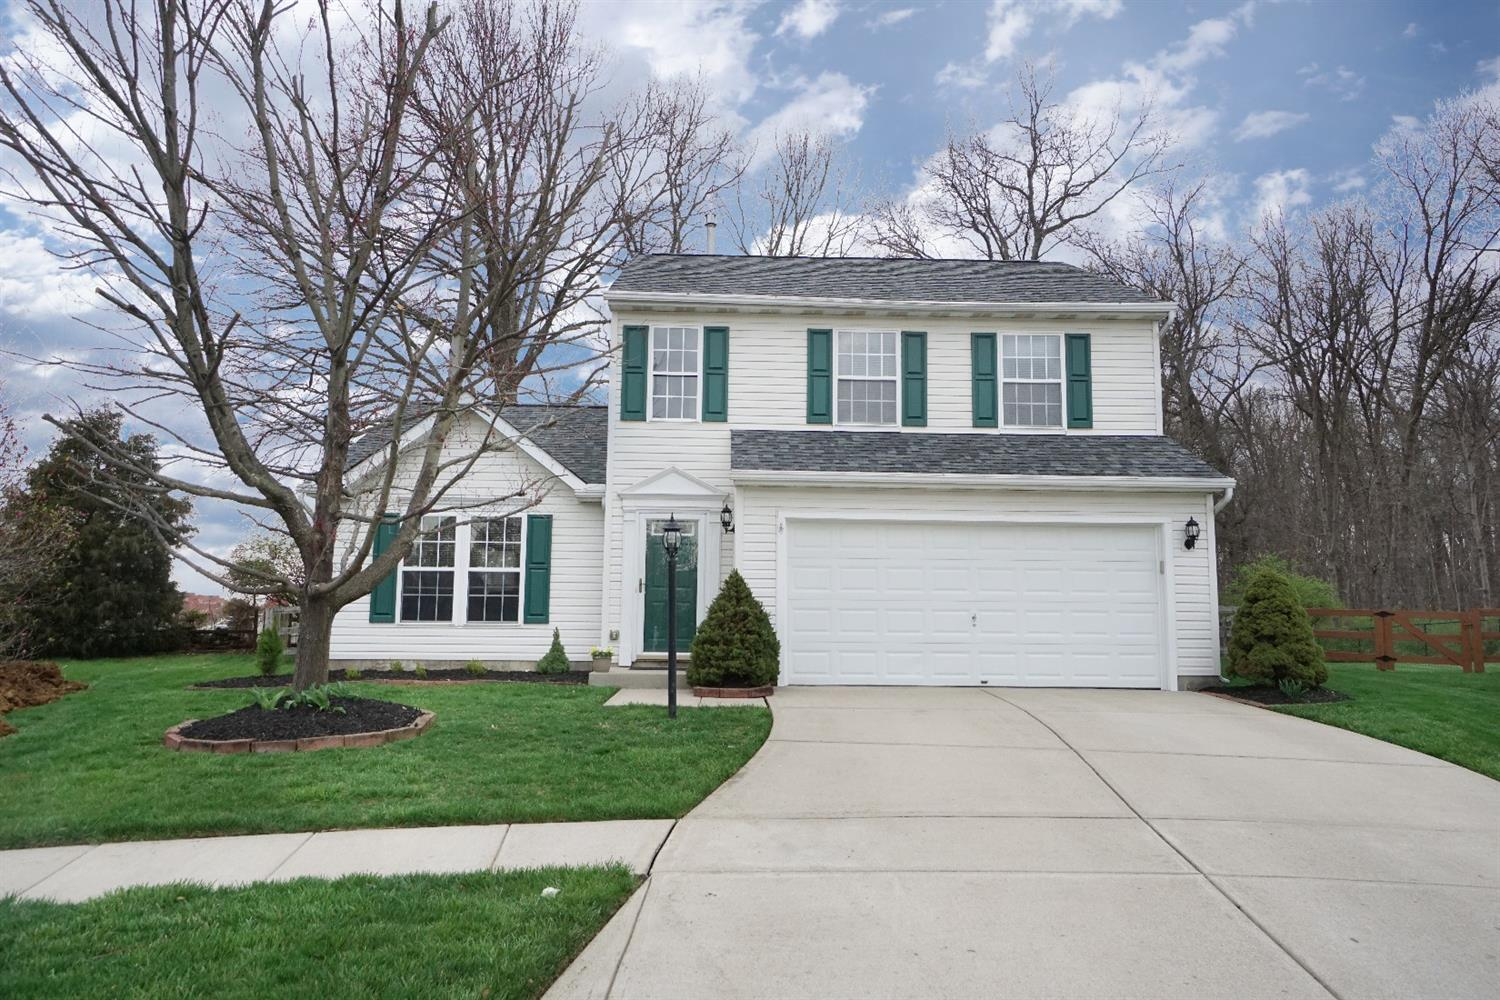 6517 Sioux Pass Ct Hamilton Twp Oh 45039 Listing